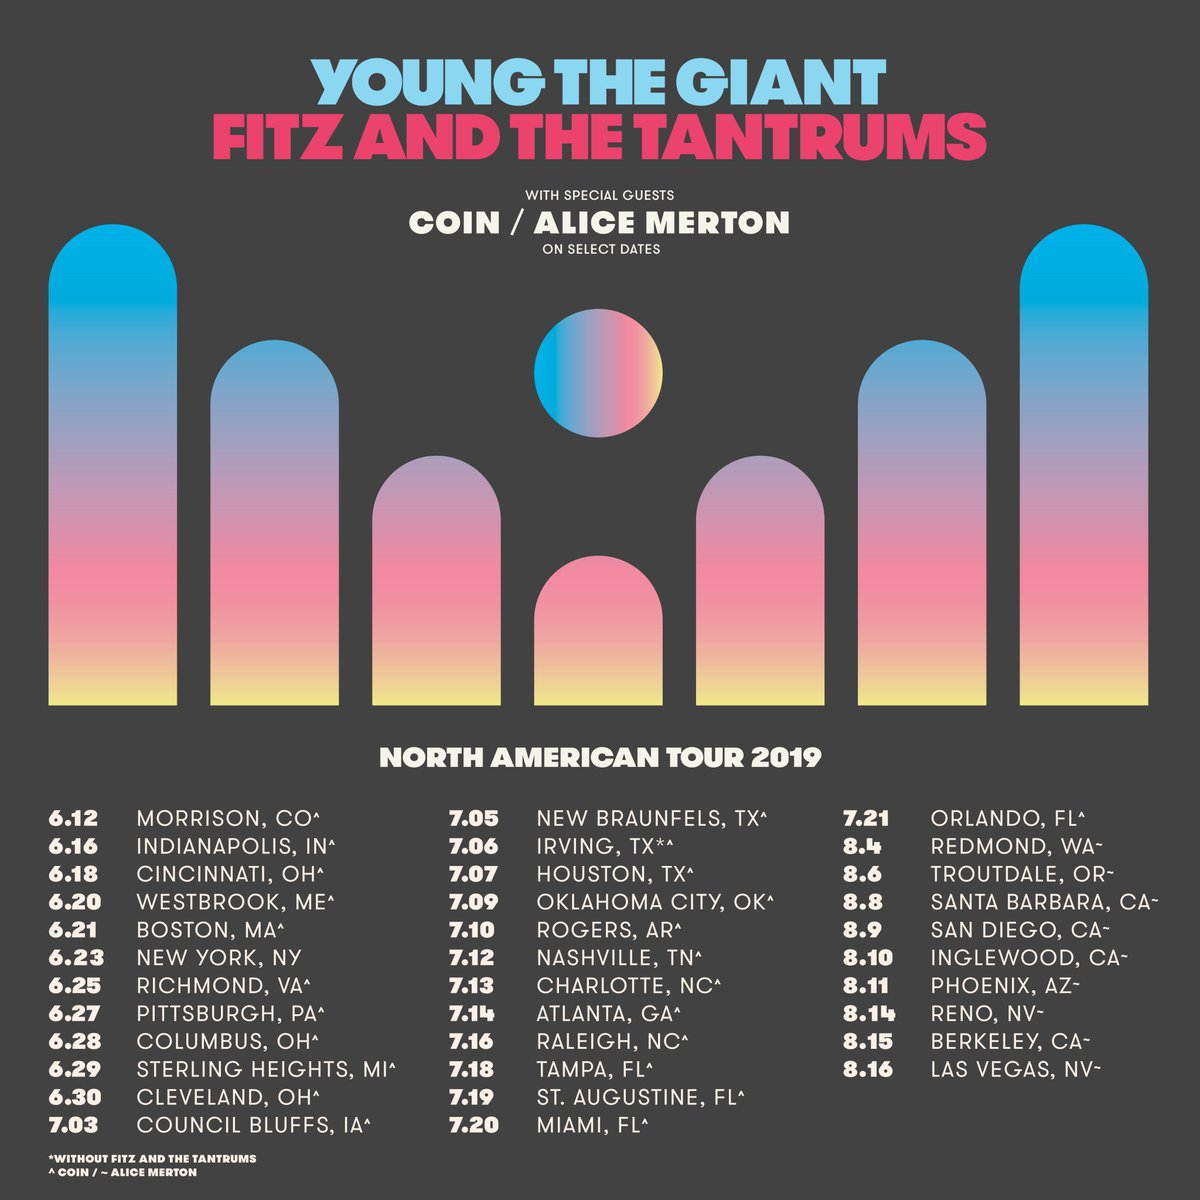 Young The Giant Announces Co-Headlining Tour With Fitz And The Tantrums